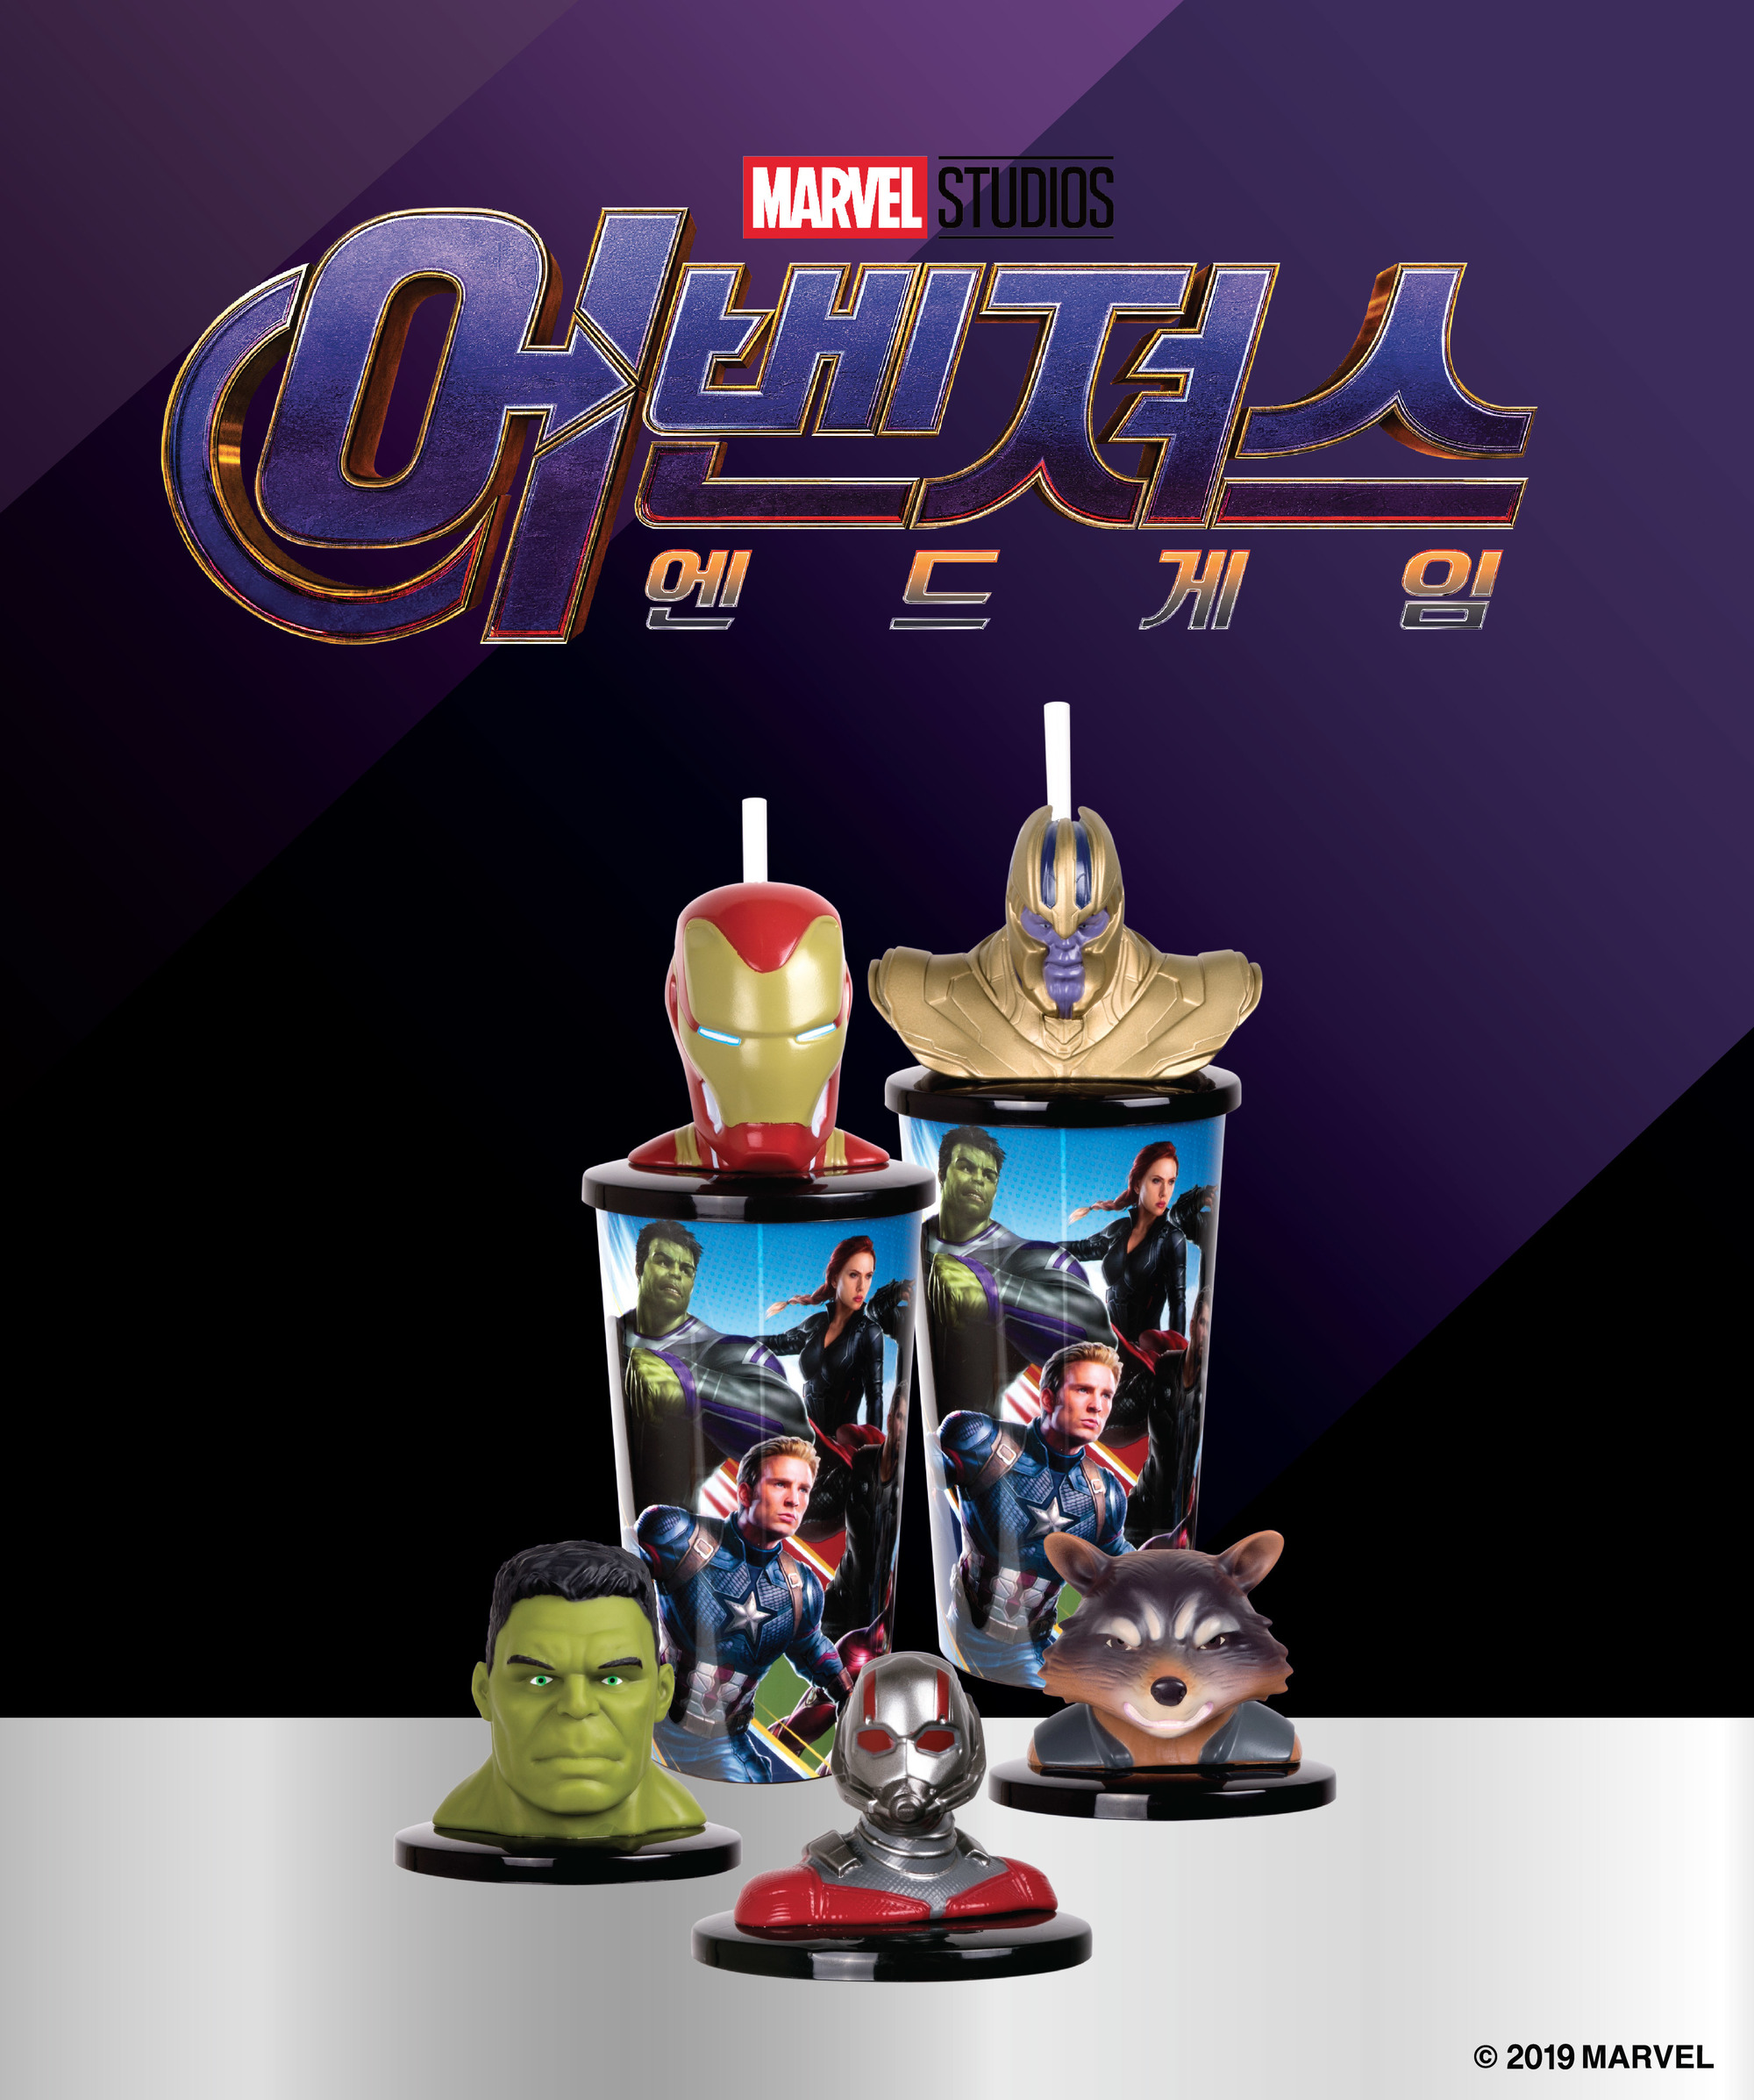 'Avengers: Endgame, 2019' - TOY CUP  - MEGABOX